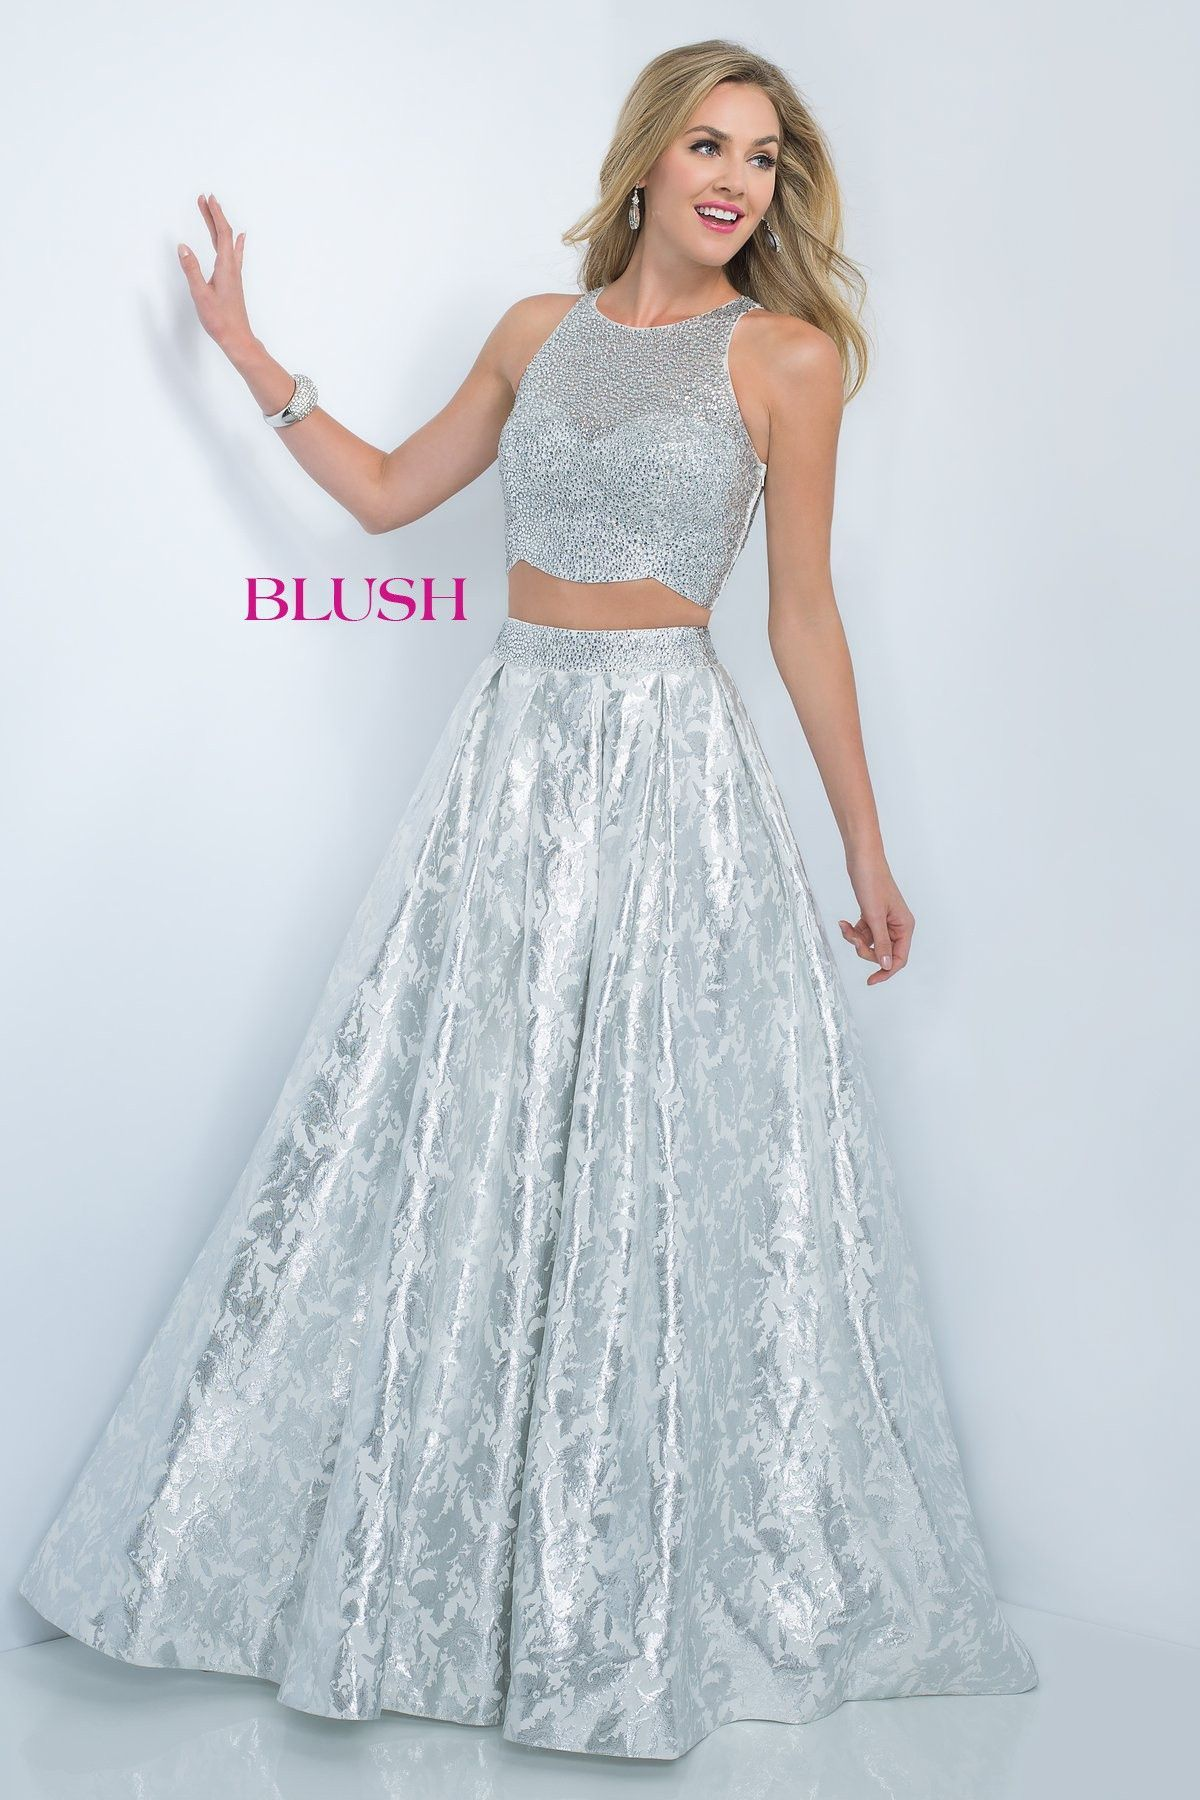 Blush Prom 5508 Off White/Silver Two Piece Ball Gown Prom Dress ...